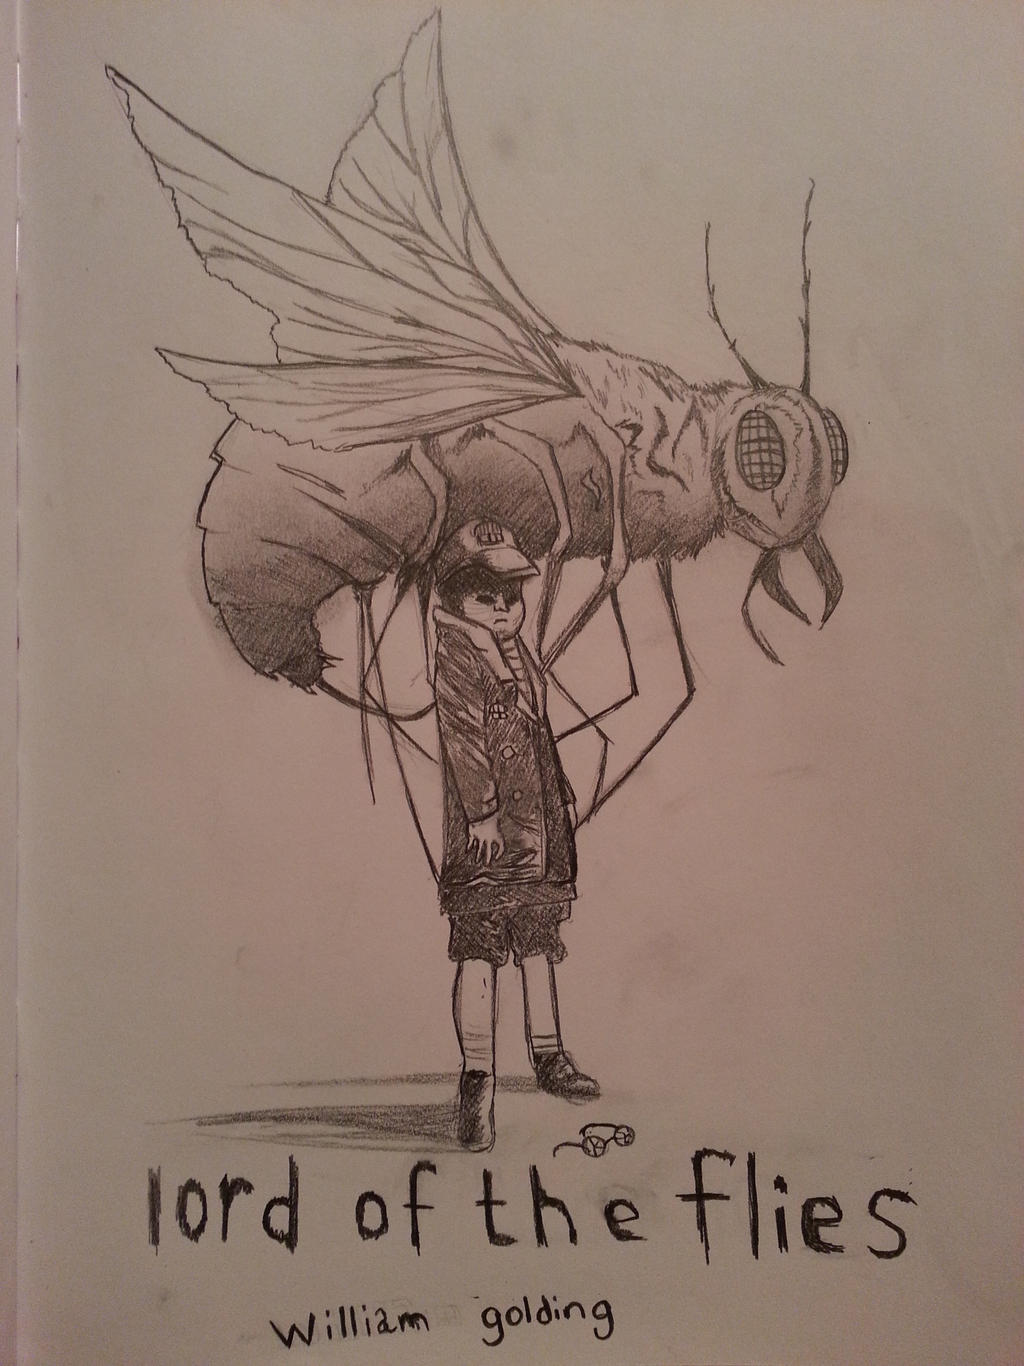 causes and effects of lord of the flies Innate evil in lord of the flies written by: terry ligard • edited by: sforsyth • updated: 1/5/2012 william golding's lord of the flies demonstrates that evil is an inborn human nature, which leads to violence and a turn away from civilization.